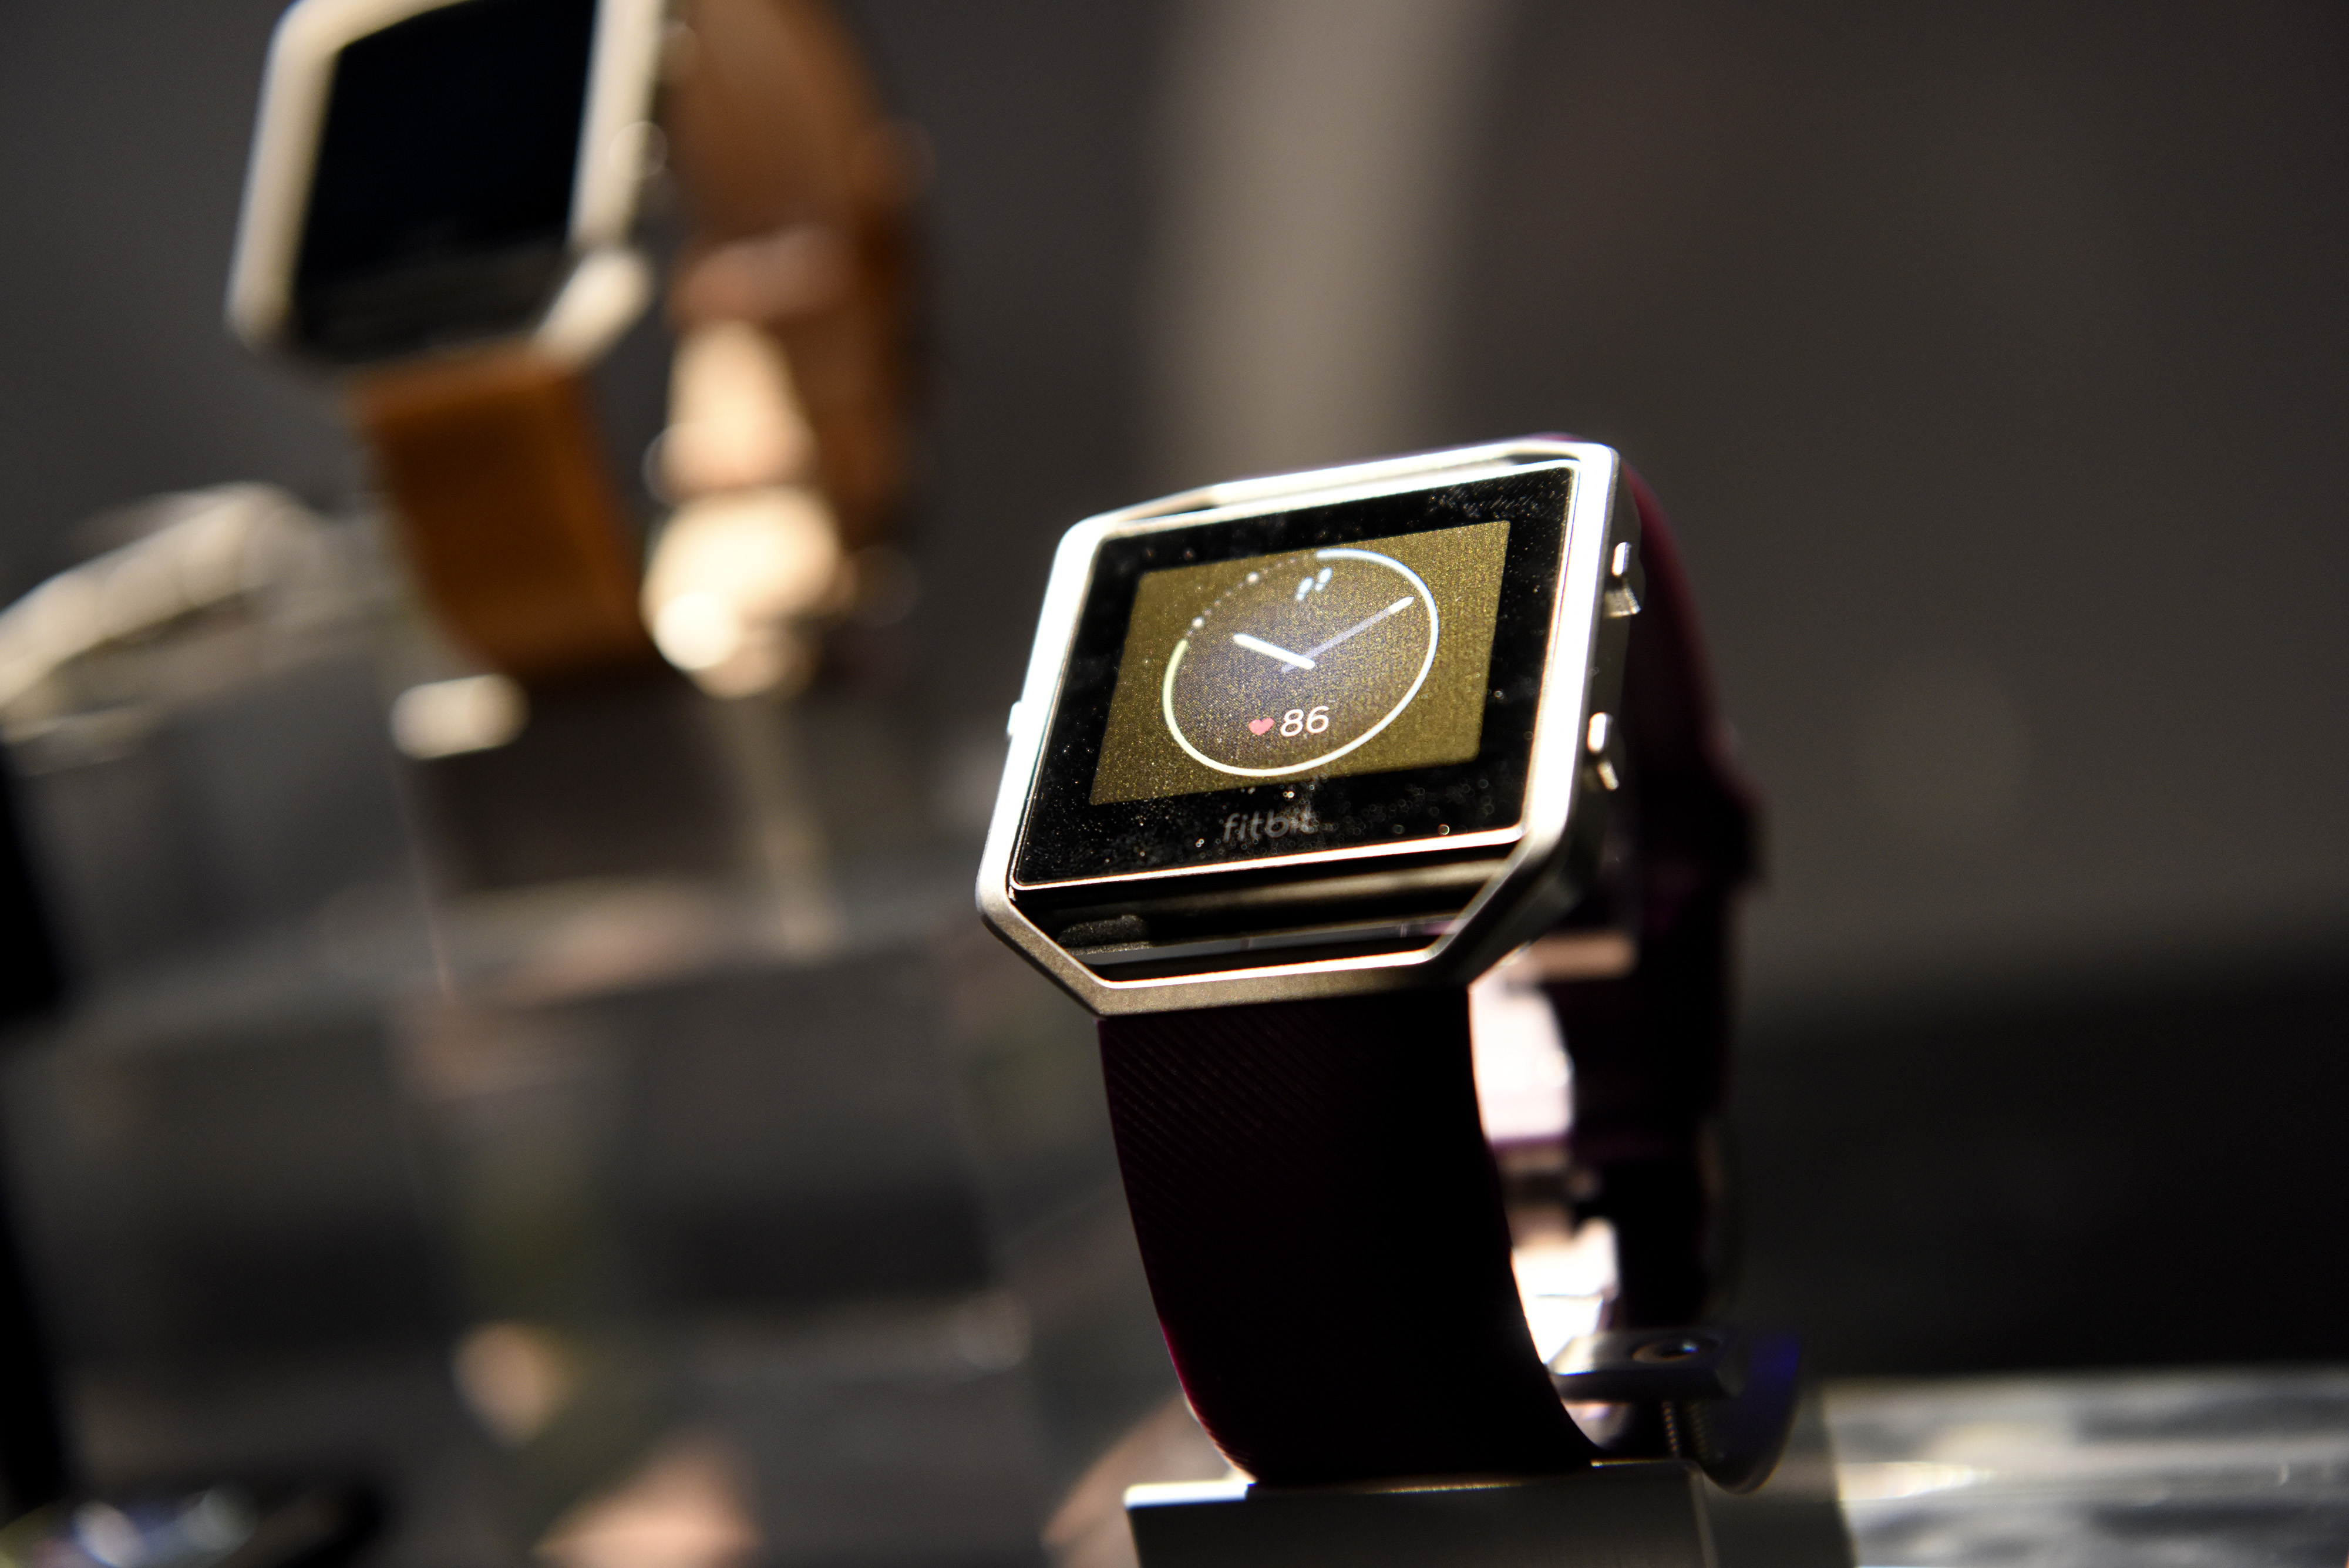 The Fitbit Inc. Blaze fitness tracker is displayed during an event at the 2016 Consumer Electronics Show (CES) in Las Vegas on Jan. 5, 2016.